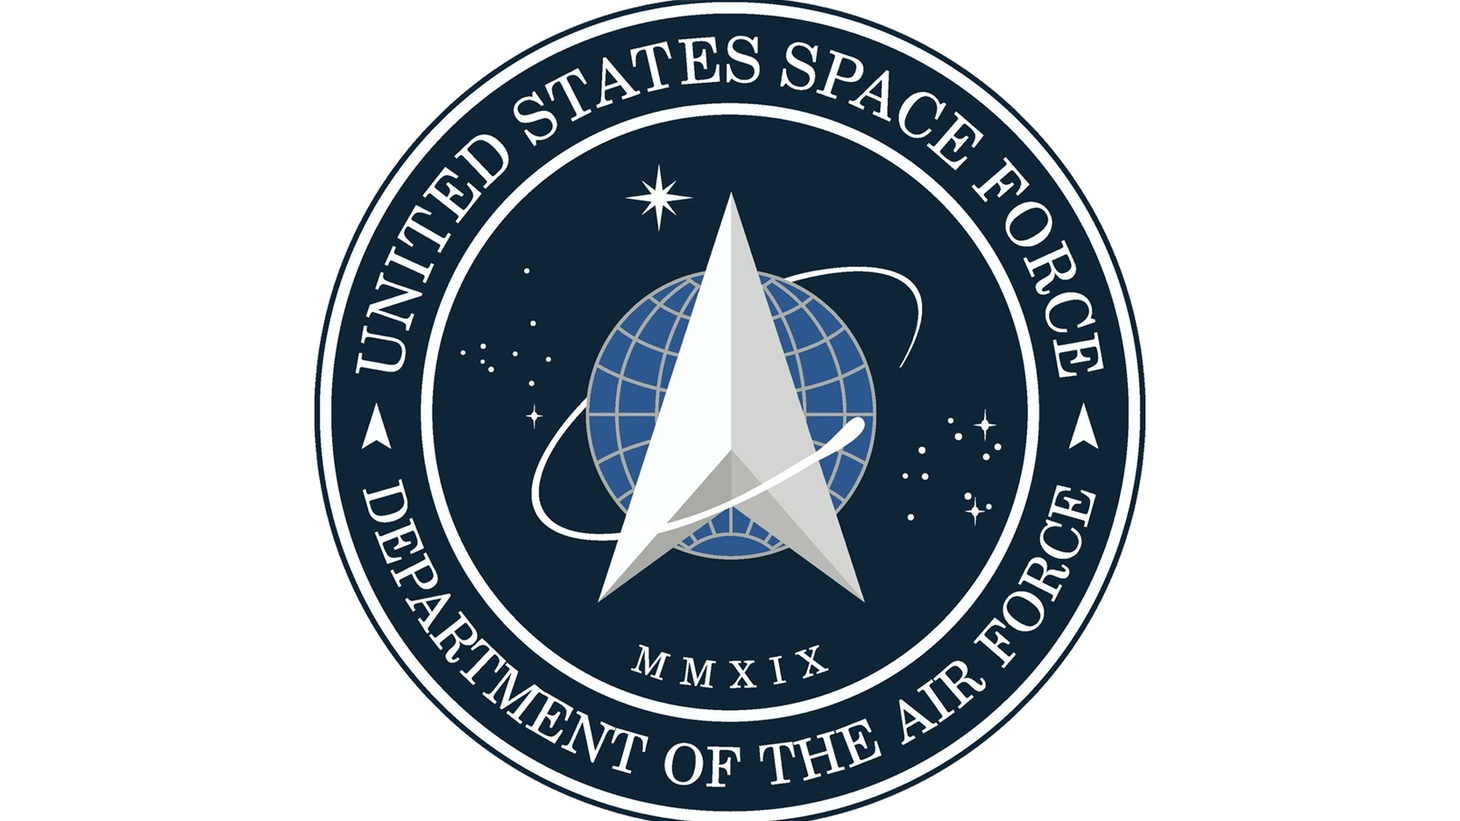 The seal of the United States Space Force, as announced by President Donald Trump, January 24, 2020. Public Domain.